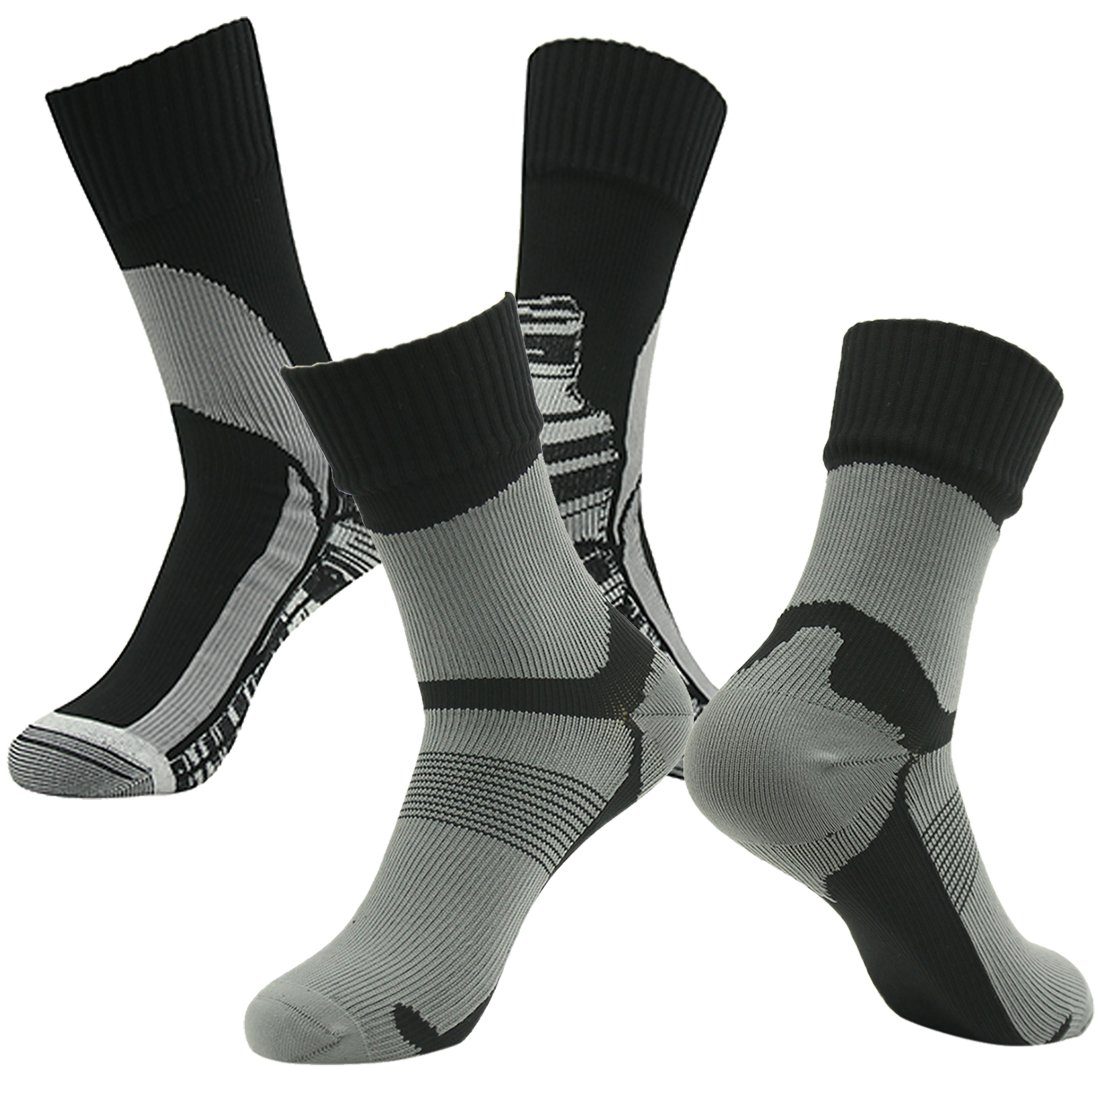 RANDY SUN Men's Nonslip Sock Suitable for Motorcycling Hiking Fishing and Hunting Golf by RANDY SUN